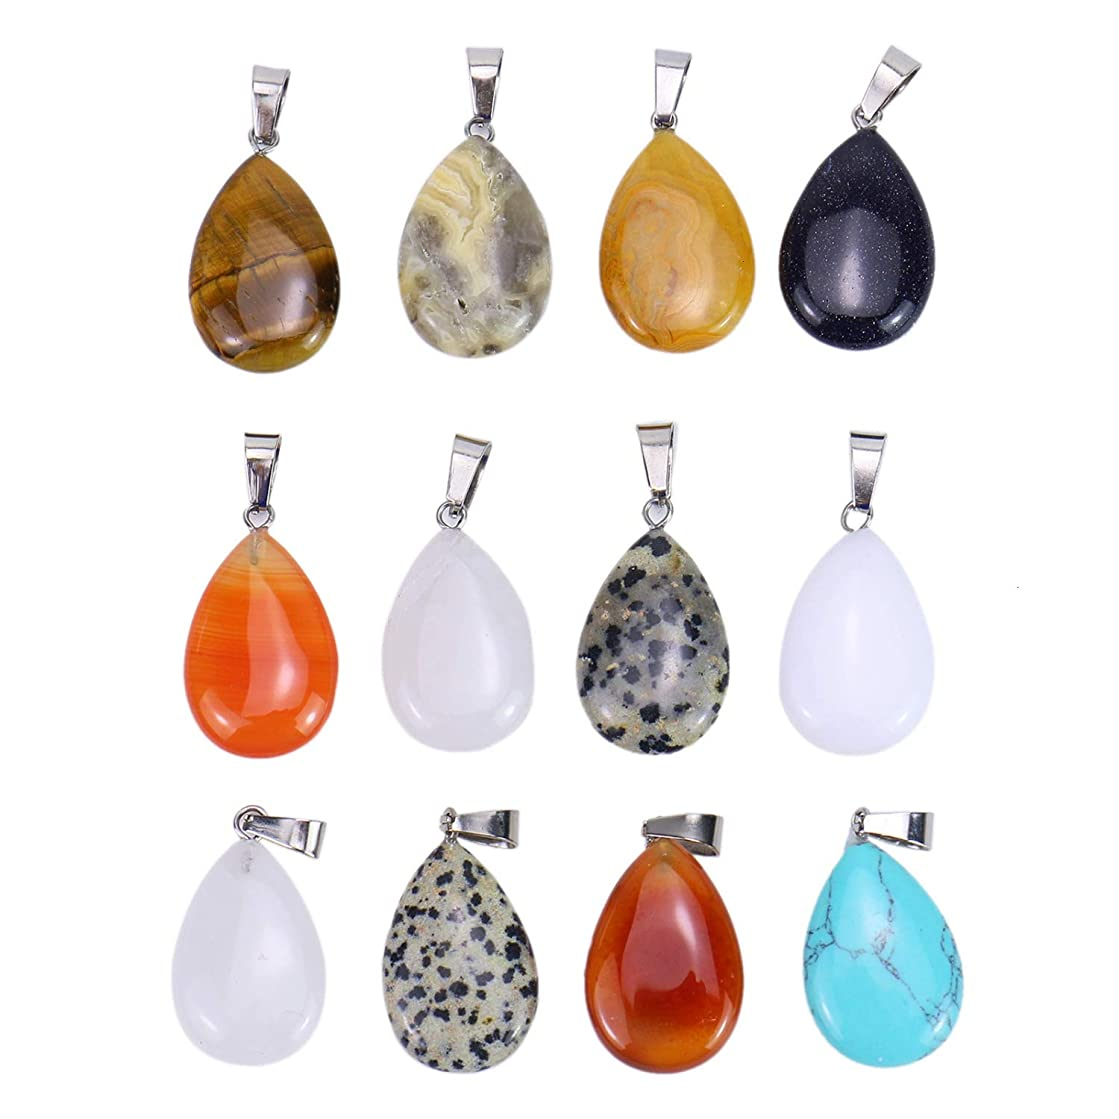 Monrocco 12PCS Assorted Water Drop Shape Healing Chakra Charm Beads Crystal Quartz Stone Pendants for Necklace Jewelry Making (Random Color)